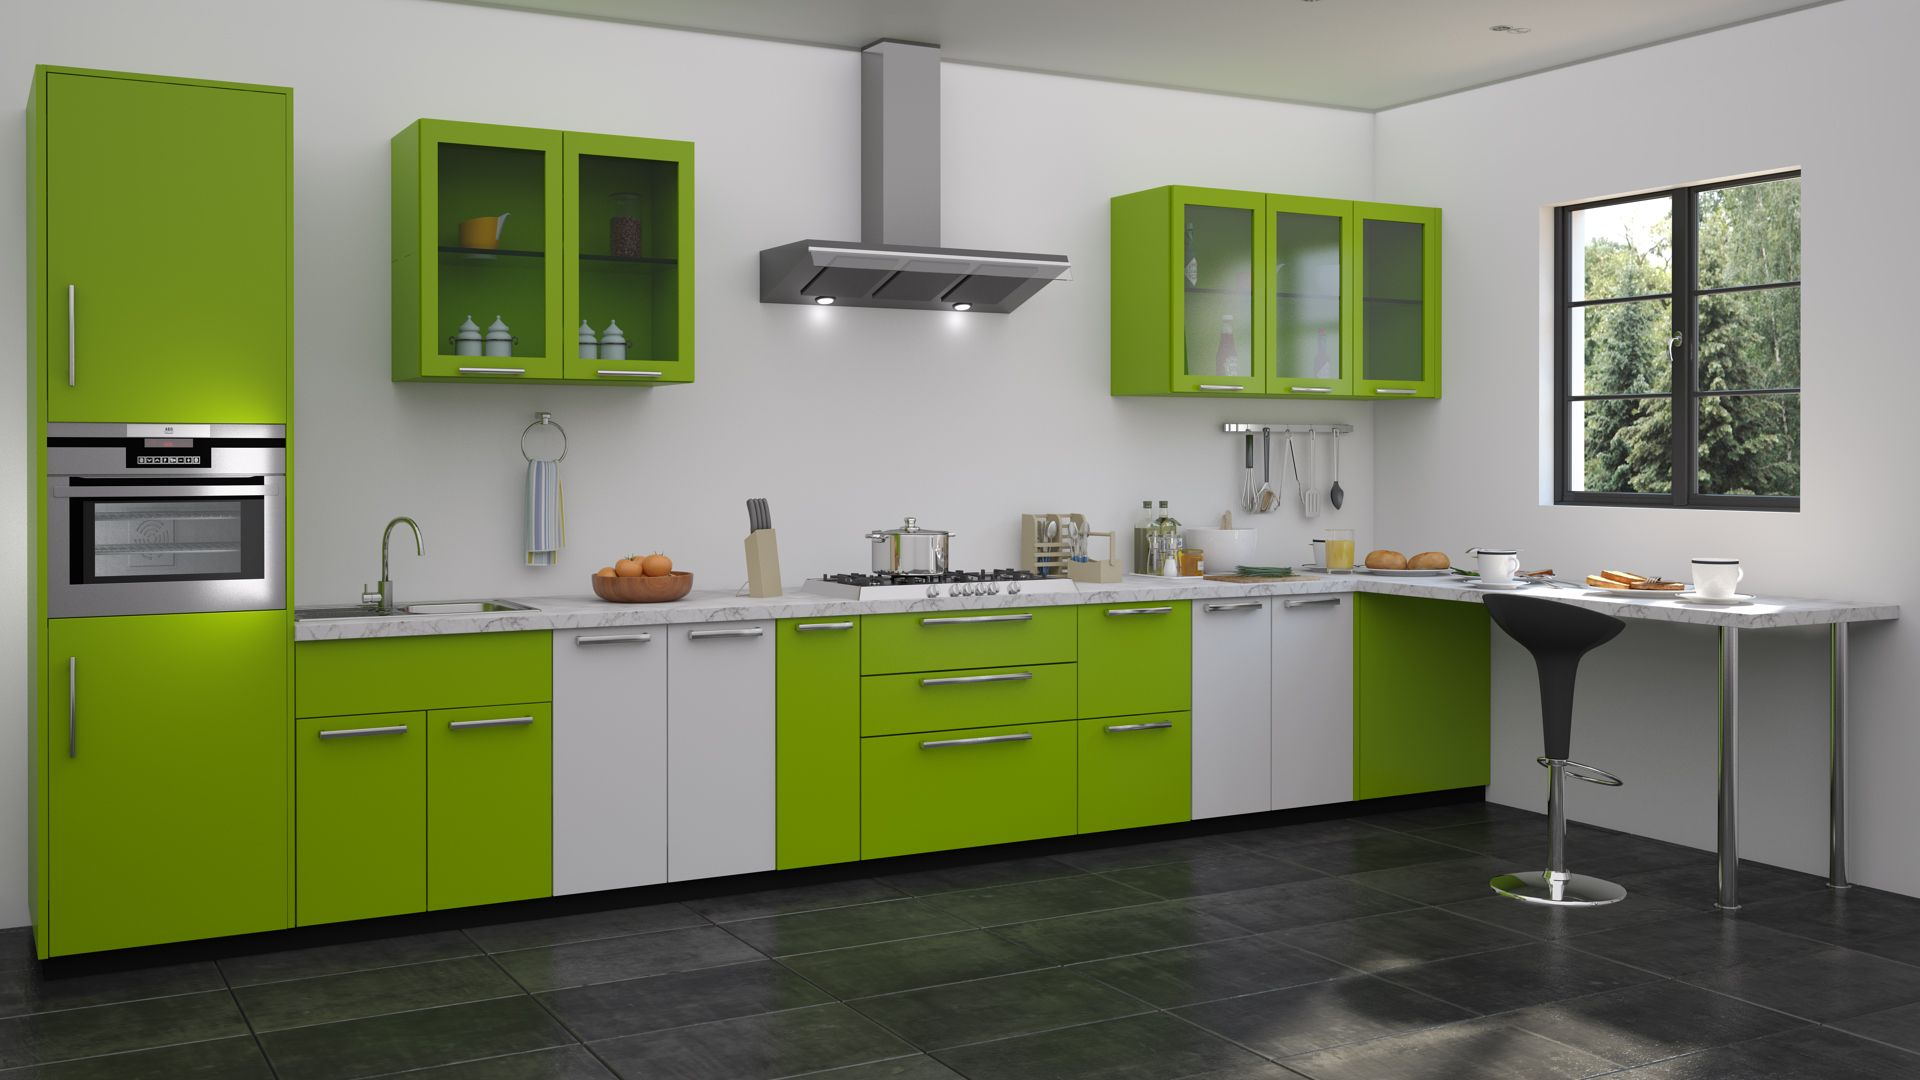 Modular Kitchen Design With Price In Delhi Different Kitchen Items Are Available For Your House Ideas In 2019